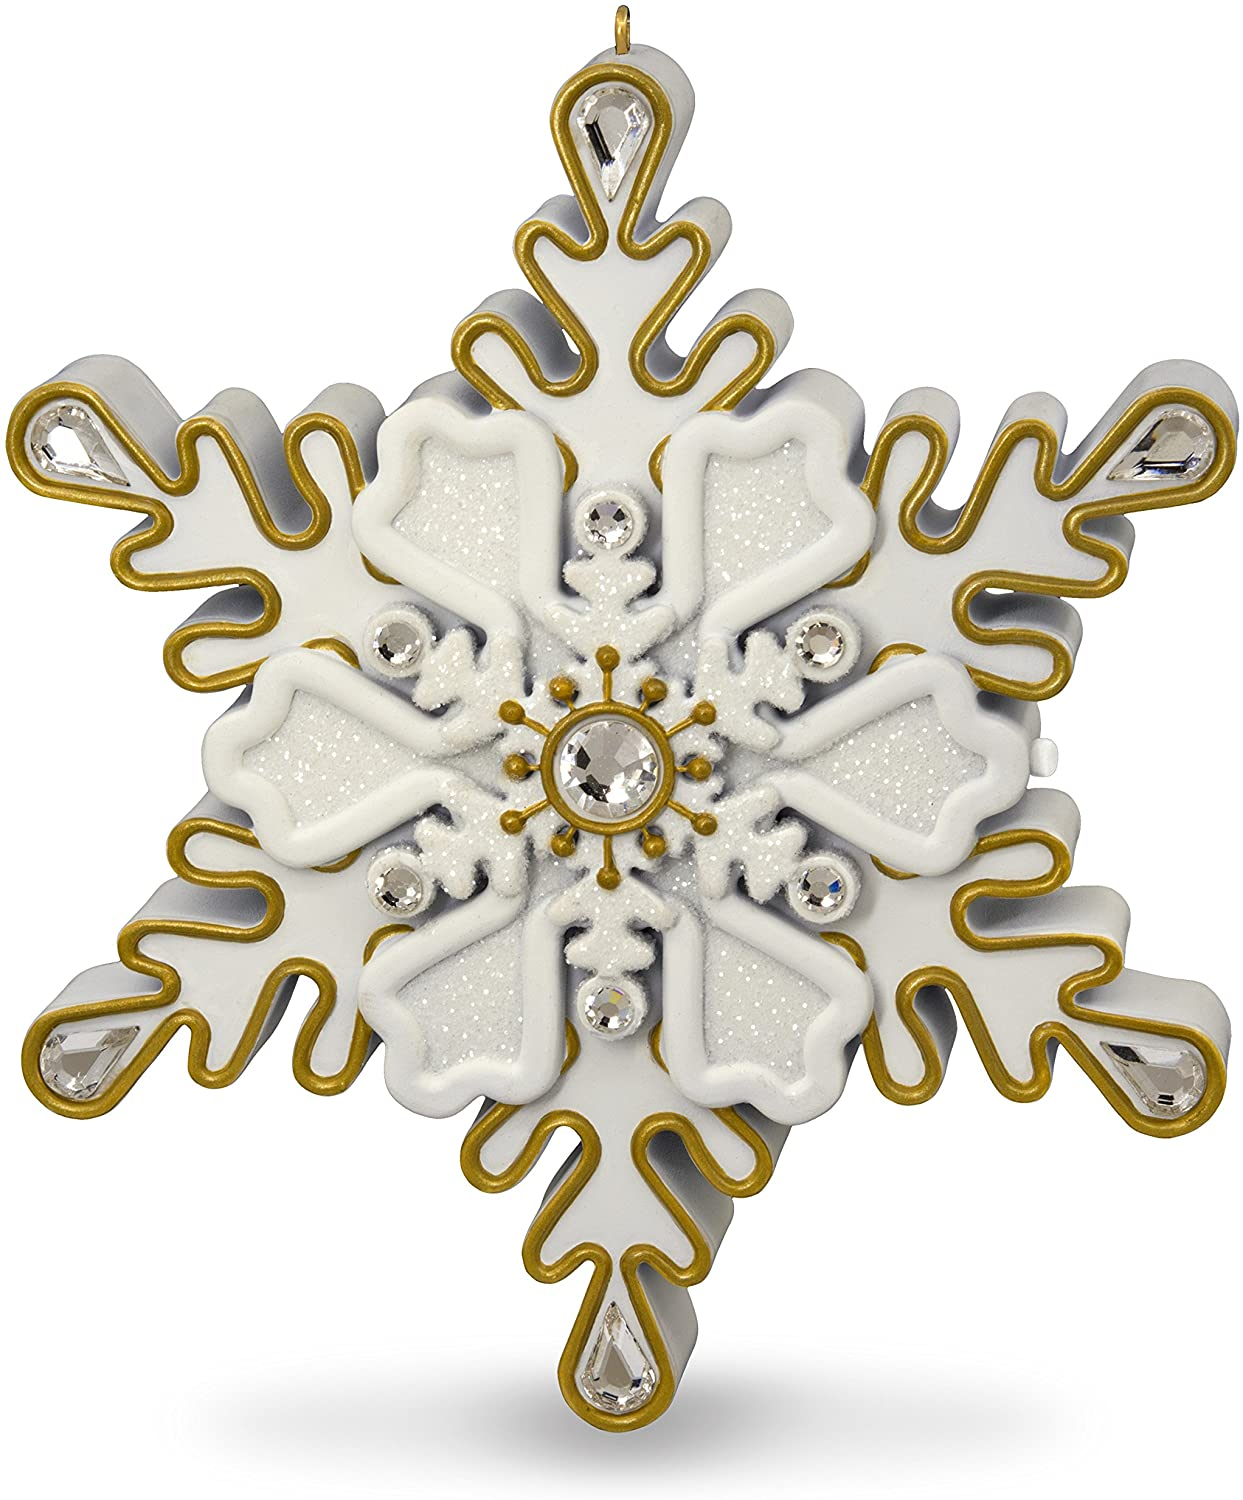 Hallmark Keepsake Christmas Ornament 2018 Year Dated, All I Want for Christmas Is You Mariah Carey Snowflake With Music